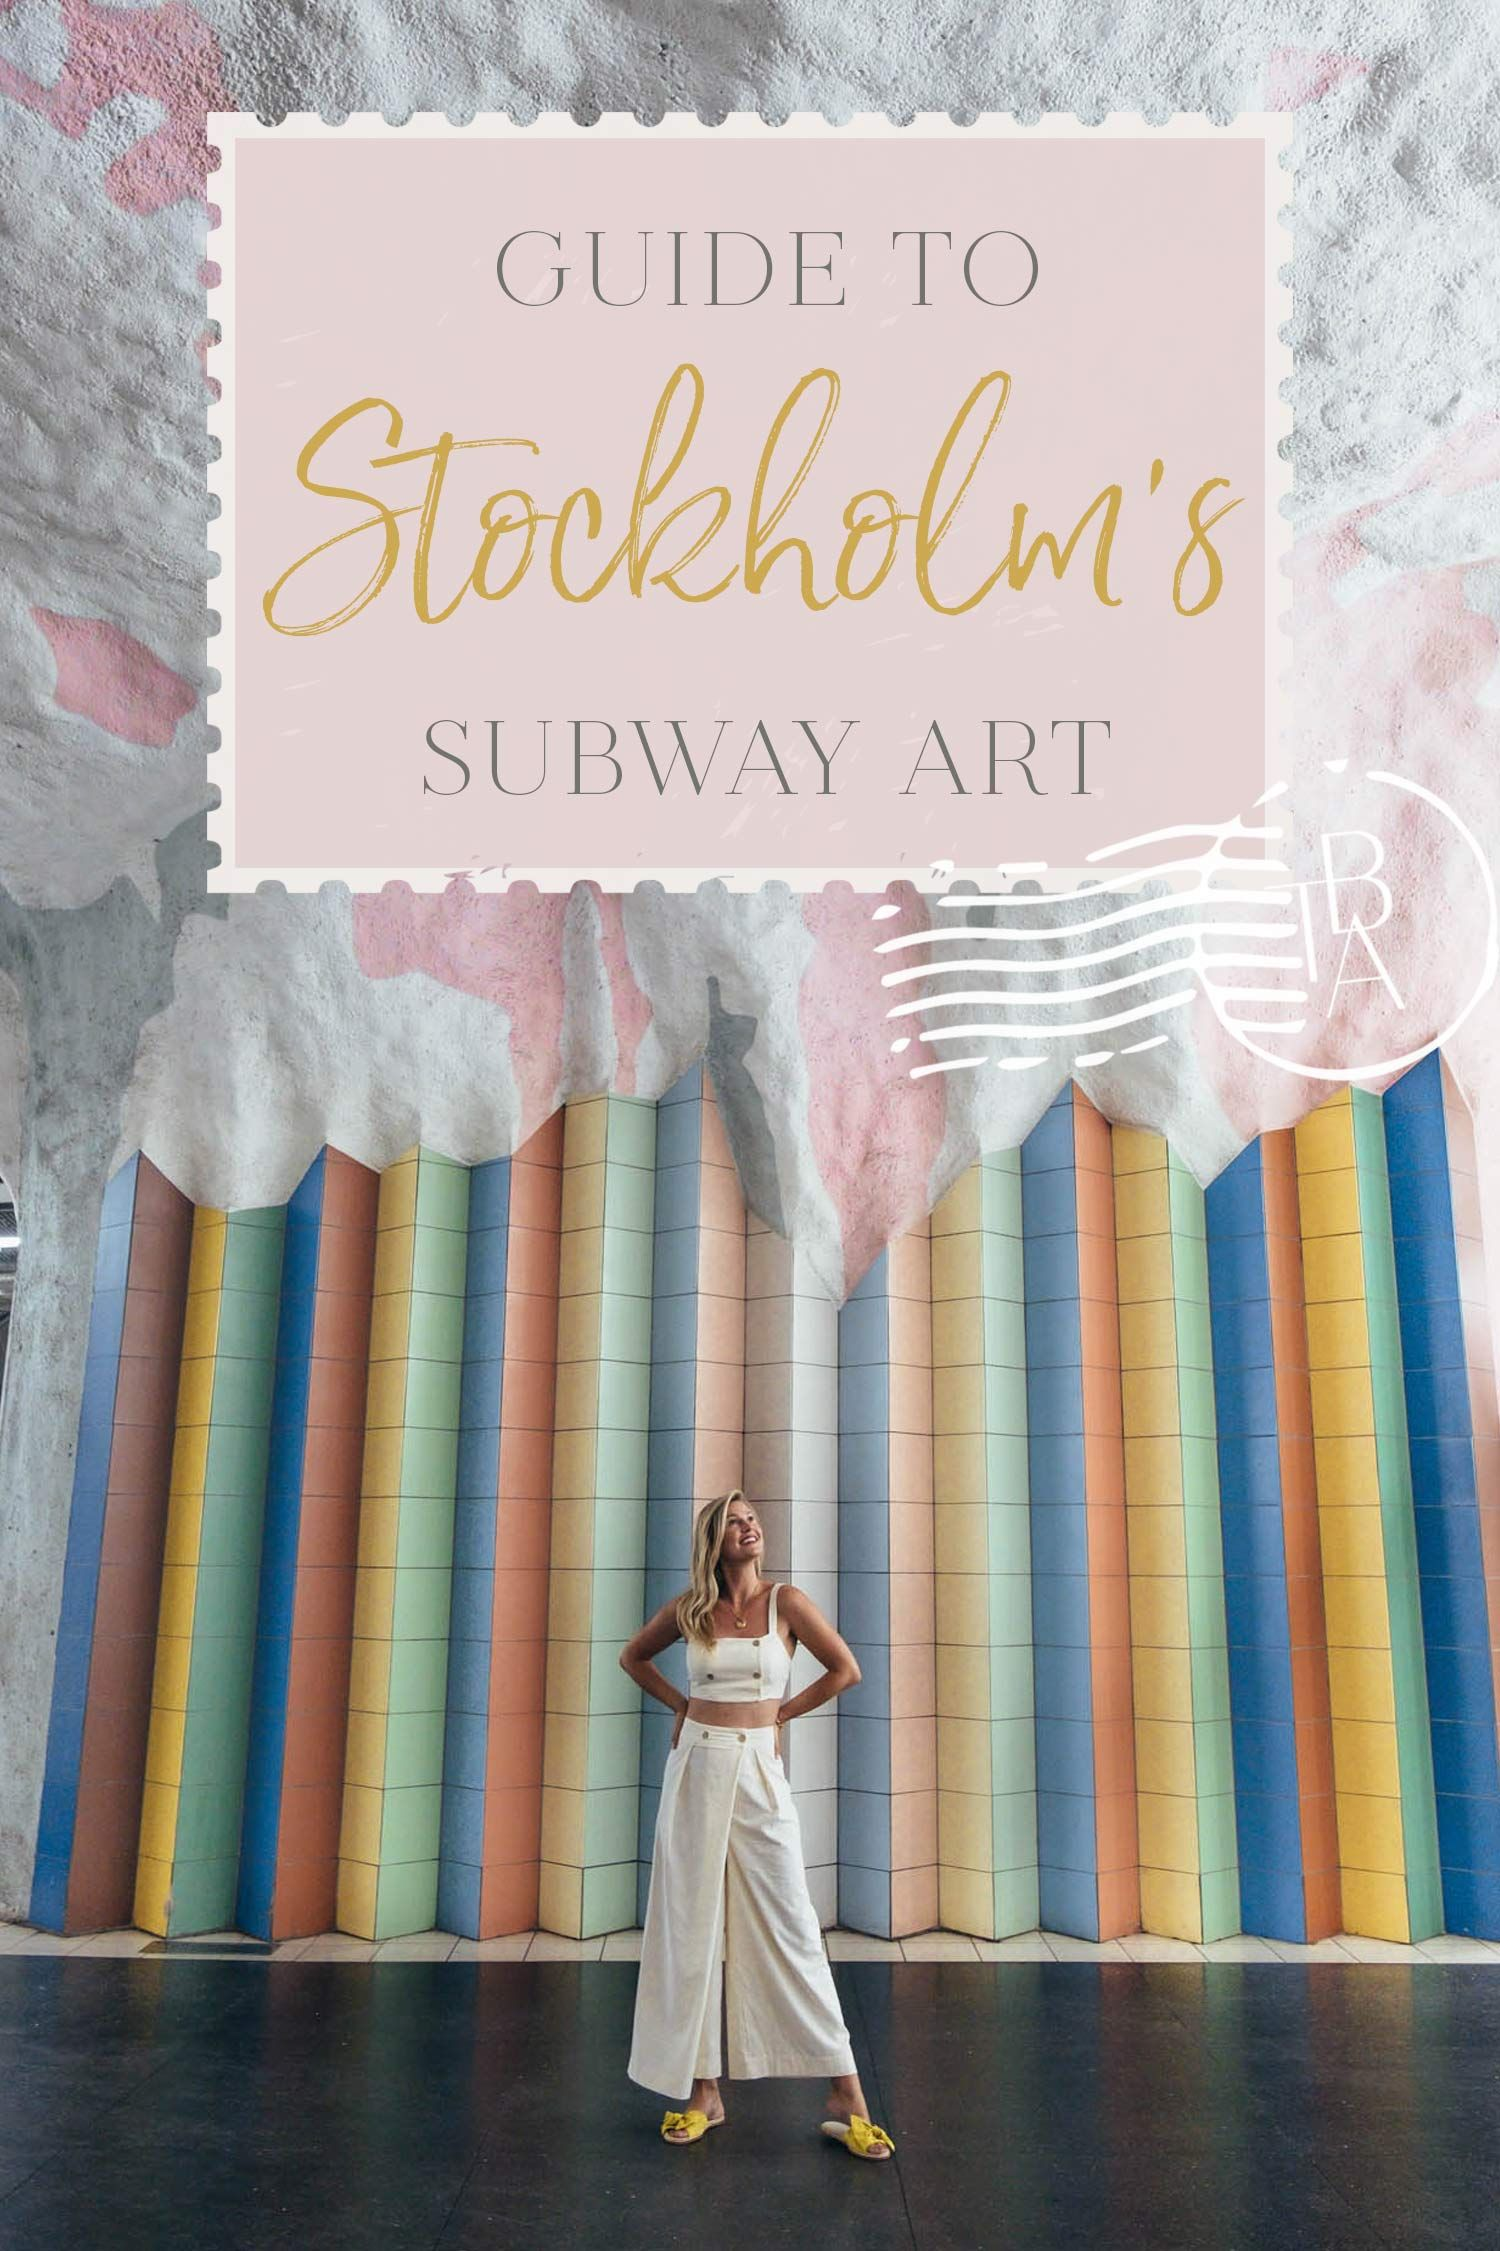 With a history of over 750 years,Stockholmis a fascinating European destination. It's restaurants whip up inventive dishes, there are beautiful parks to explore, and the city has an incredible art scene – in the subway. I've narrowed it down to nine of my favorites that showcase some of the best art there is to see.Here's my guide to Stockholm's subway art! | Sweden travel tips | Stockholm travel tips | #sweden #europetravel #stockholm